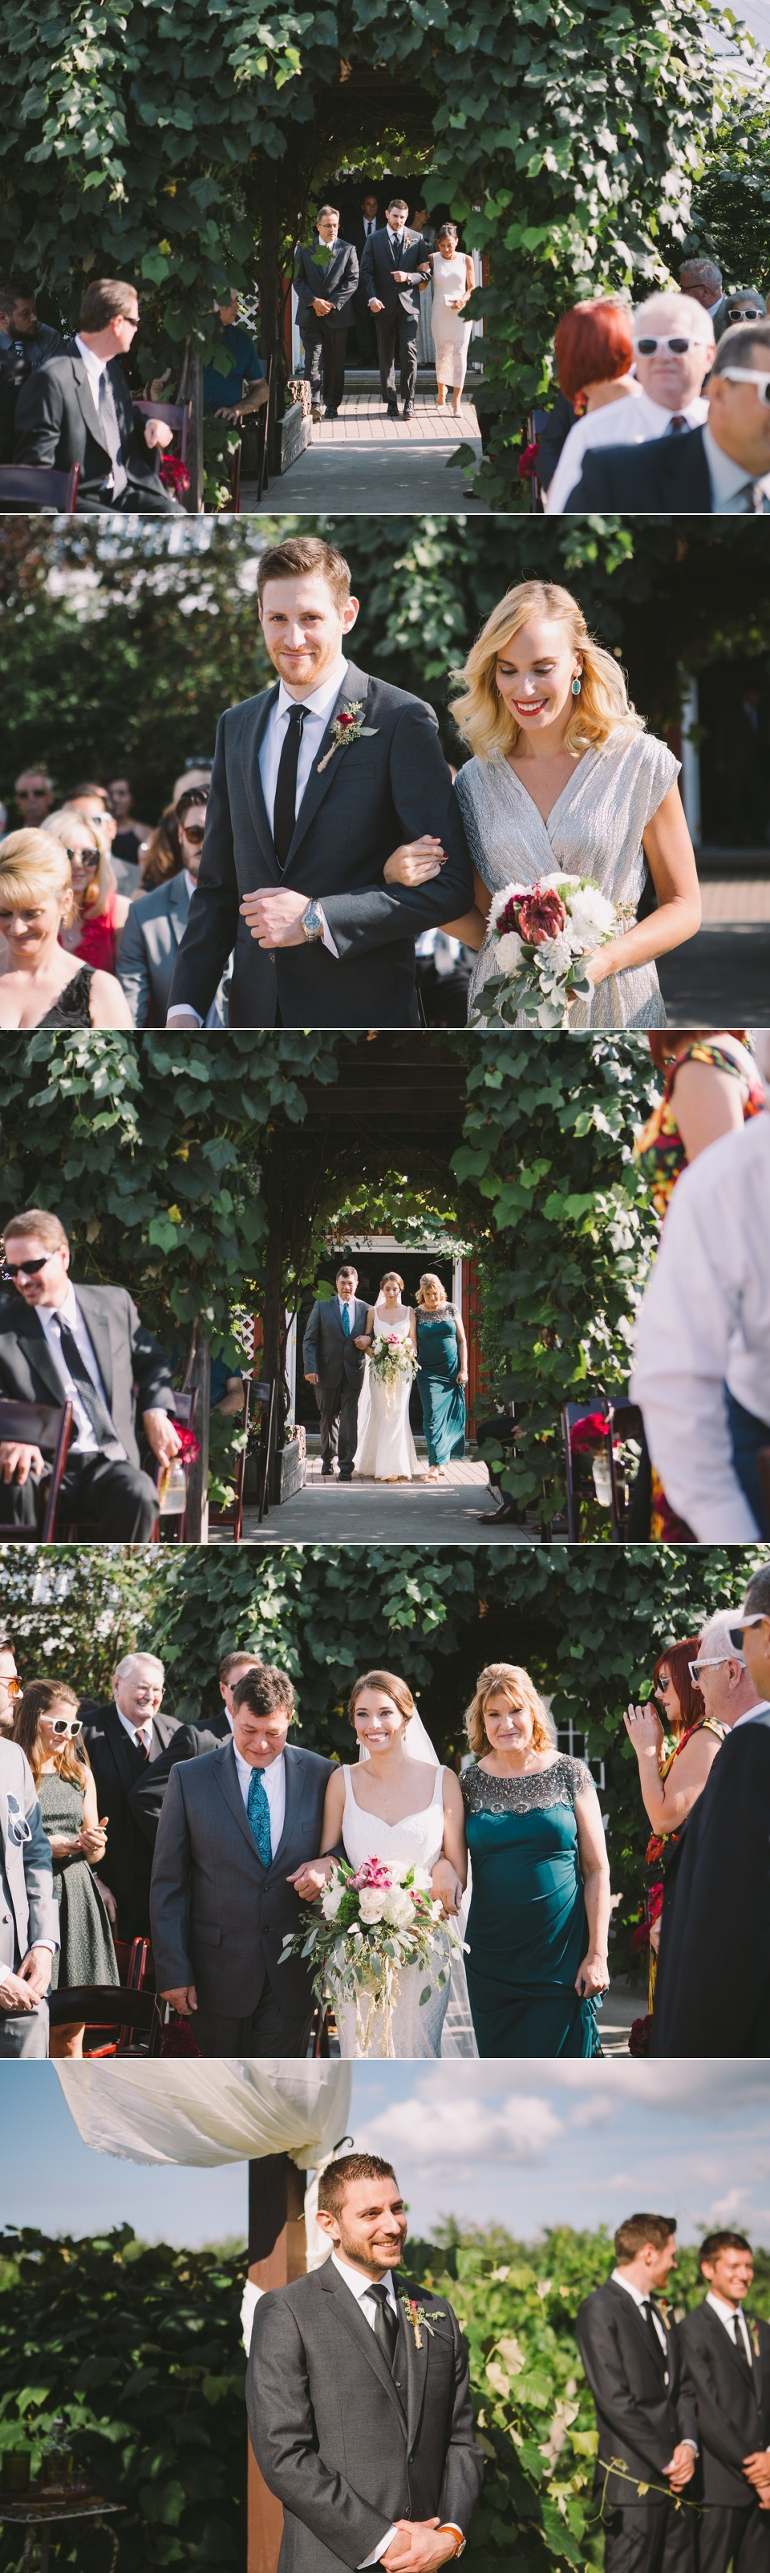 becker-farms-wedding-AJ-2015_0009